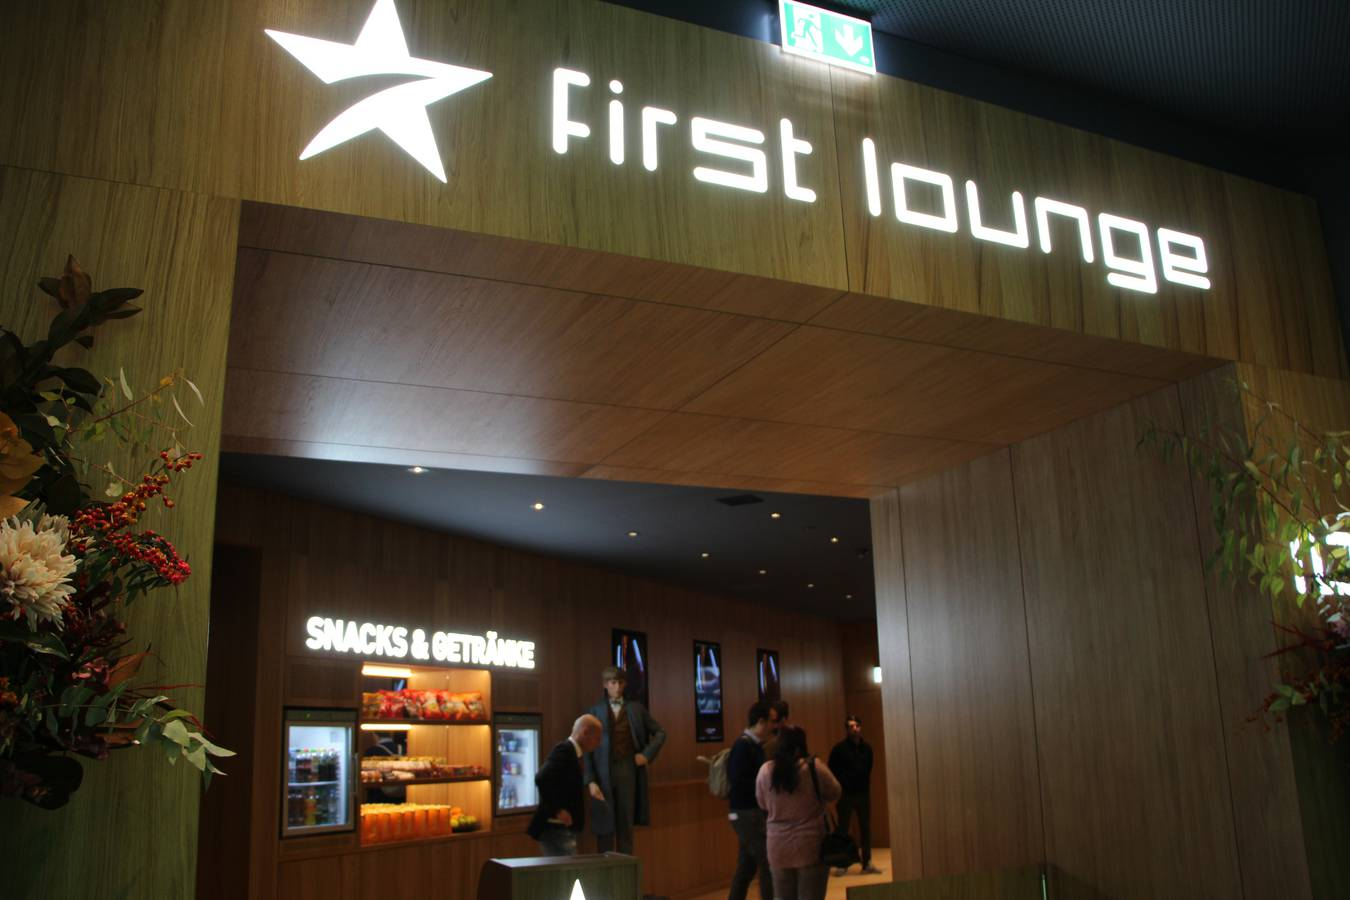 Eingang zur First Lounge (© FM1Today)